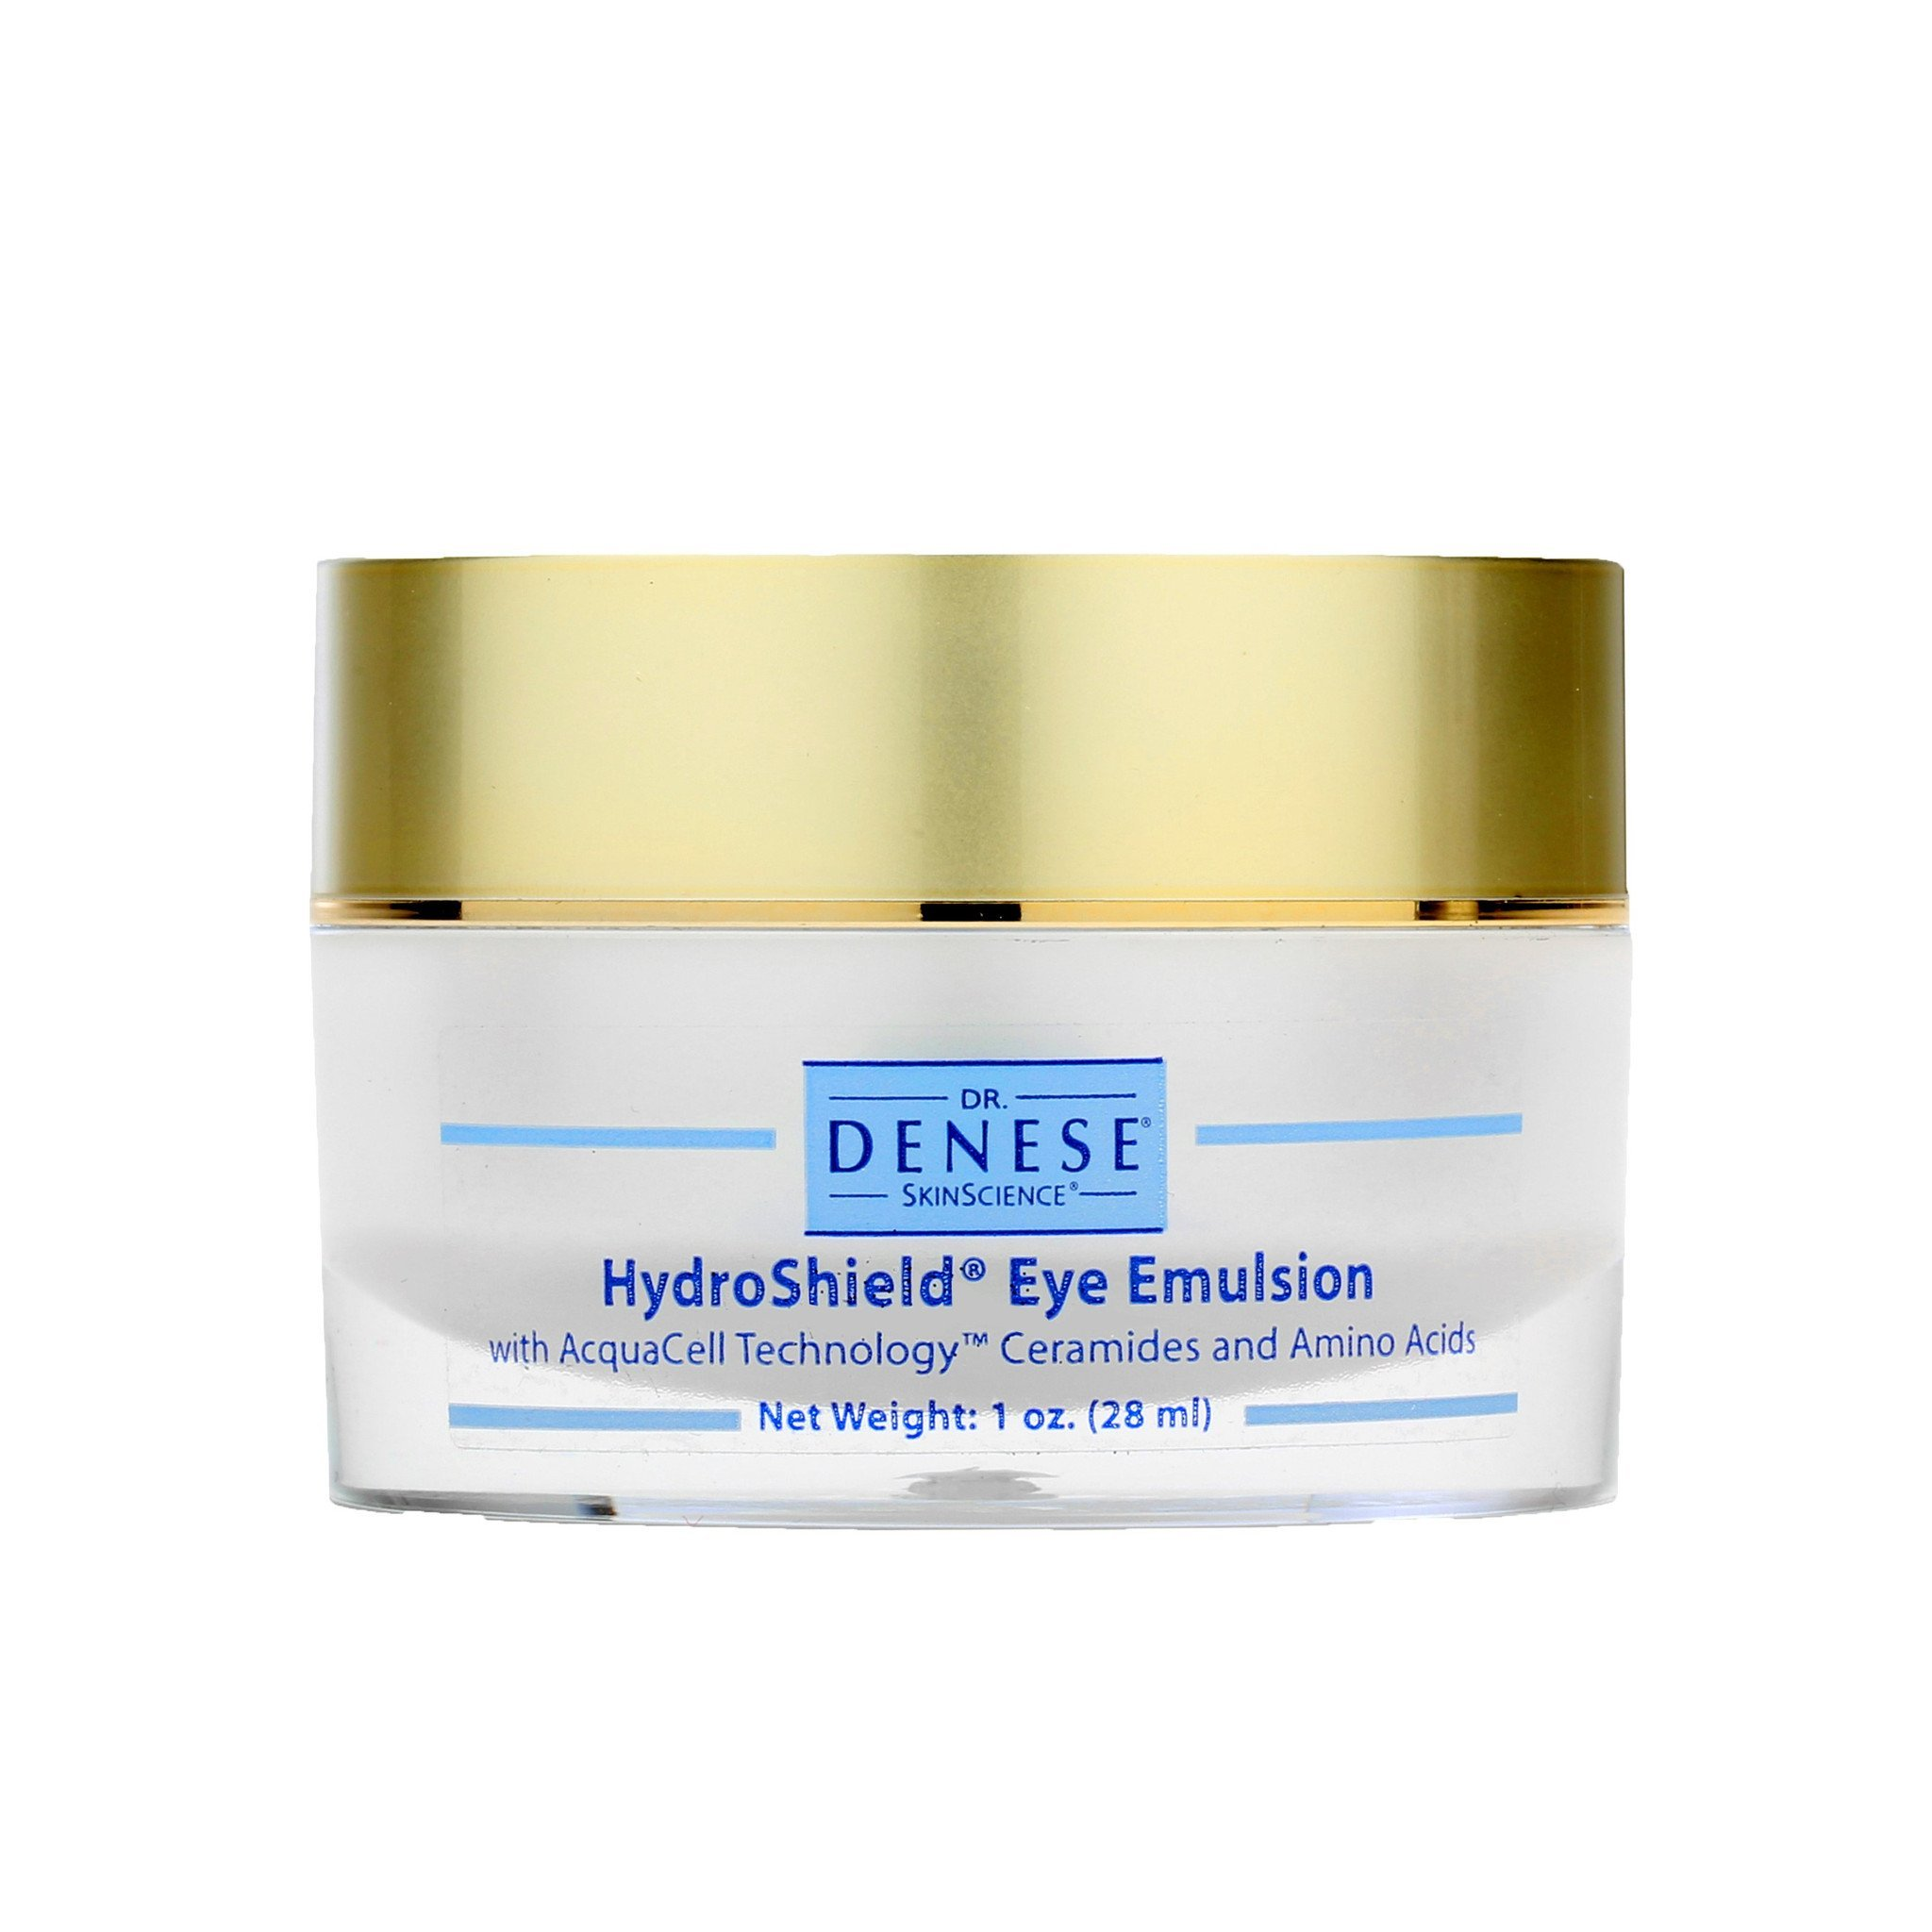 Dr. Denese HydroShield Eye Emulsion with Acquacell Technology (1 OZ)